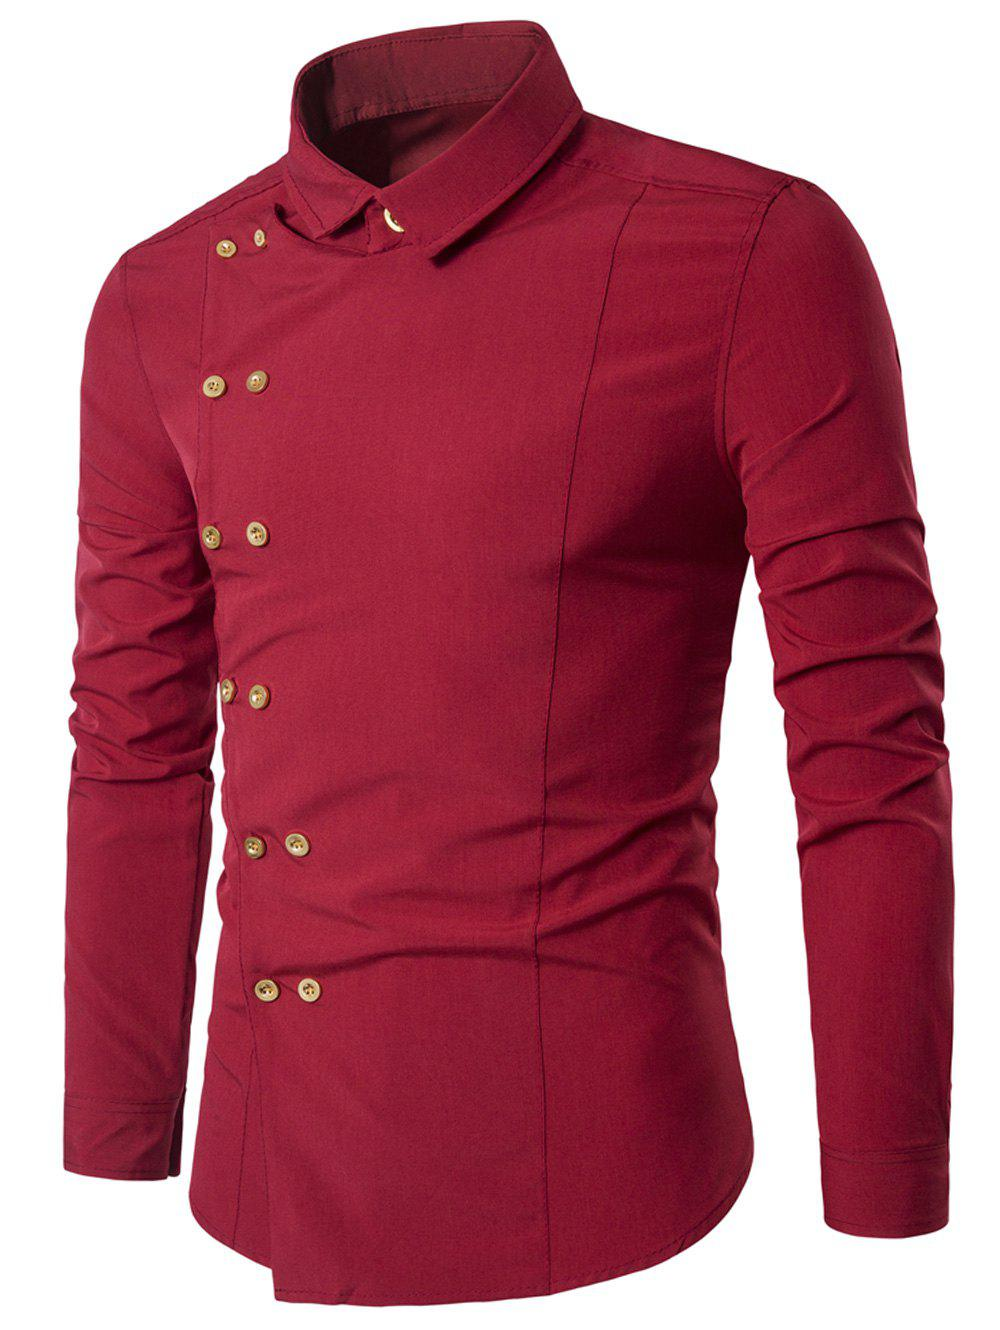 Double Breasted Turndown Collar Long Sleeve ShirtMEN<br><br>Size: XL; Color: RED; Shirts Type: Casual Shirts; Material: Cotton,Polyester; Sleeve Length: Full; Collar: Turndown Collar; Pattern Type: Solid; Weight: 0.1900kg; Package Contents: 1 x Shirt;